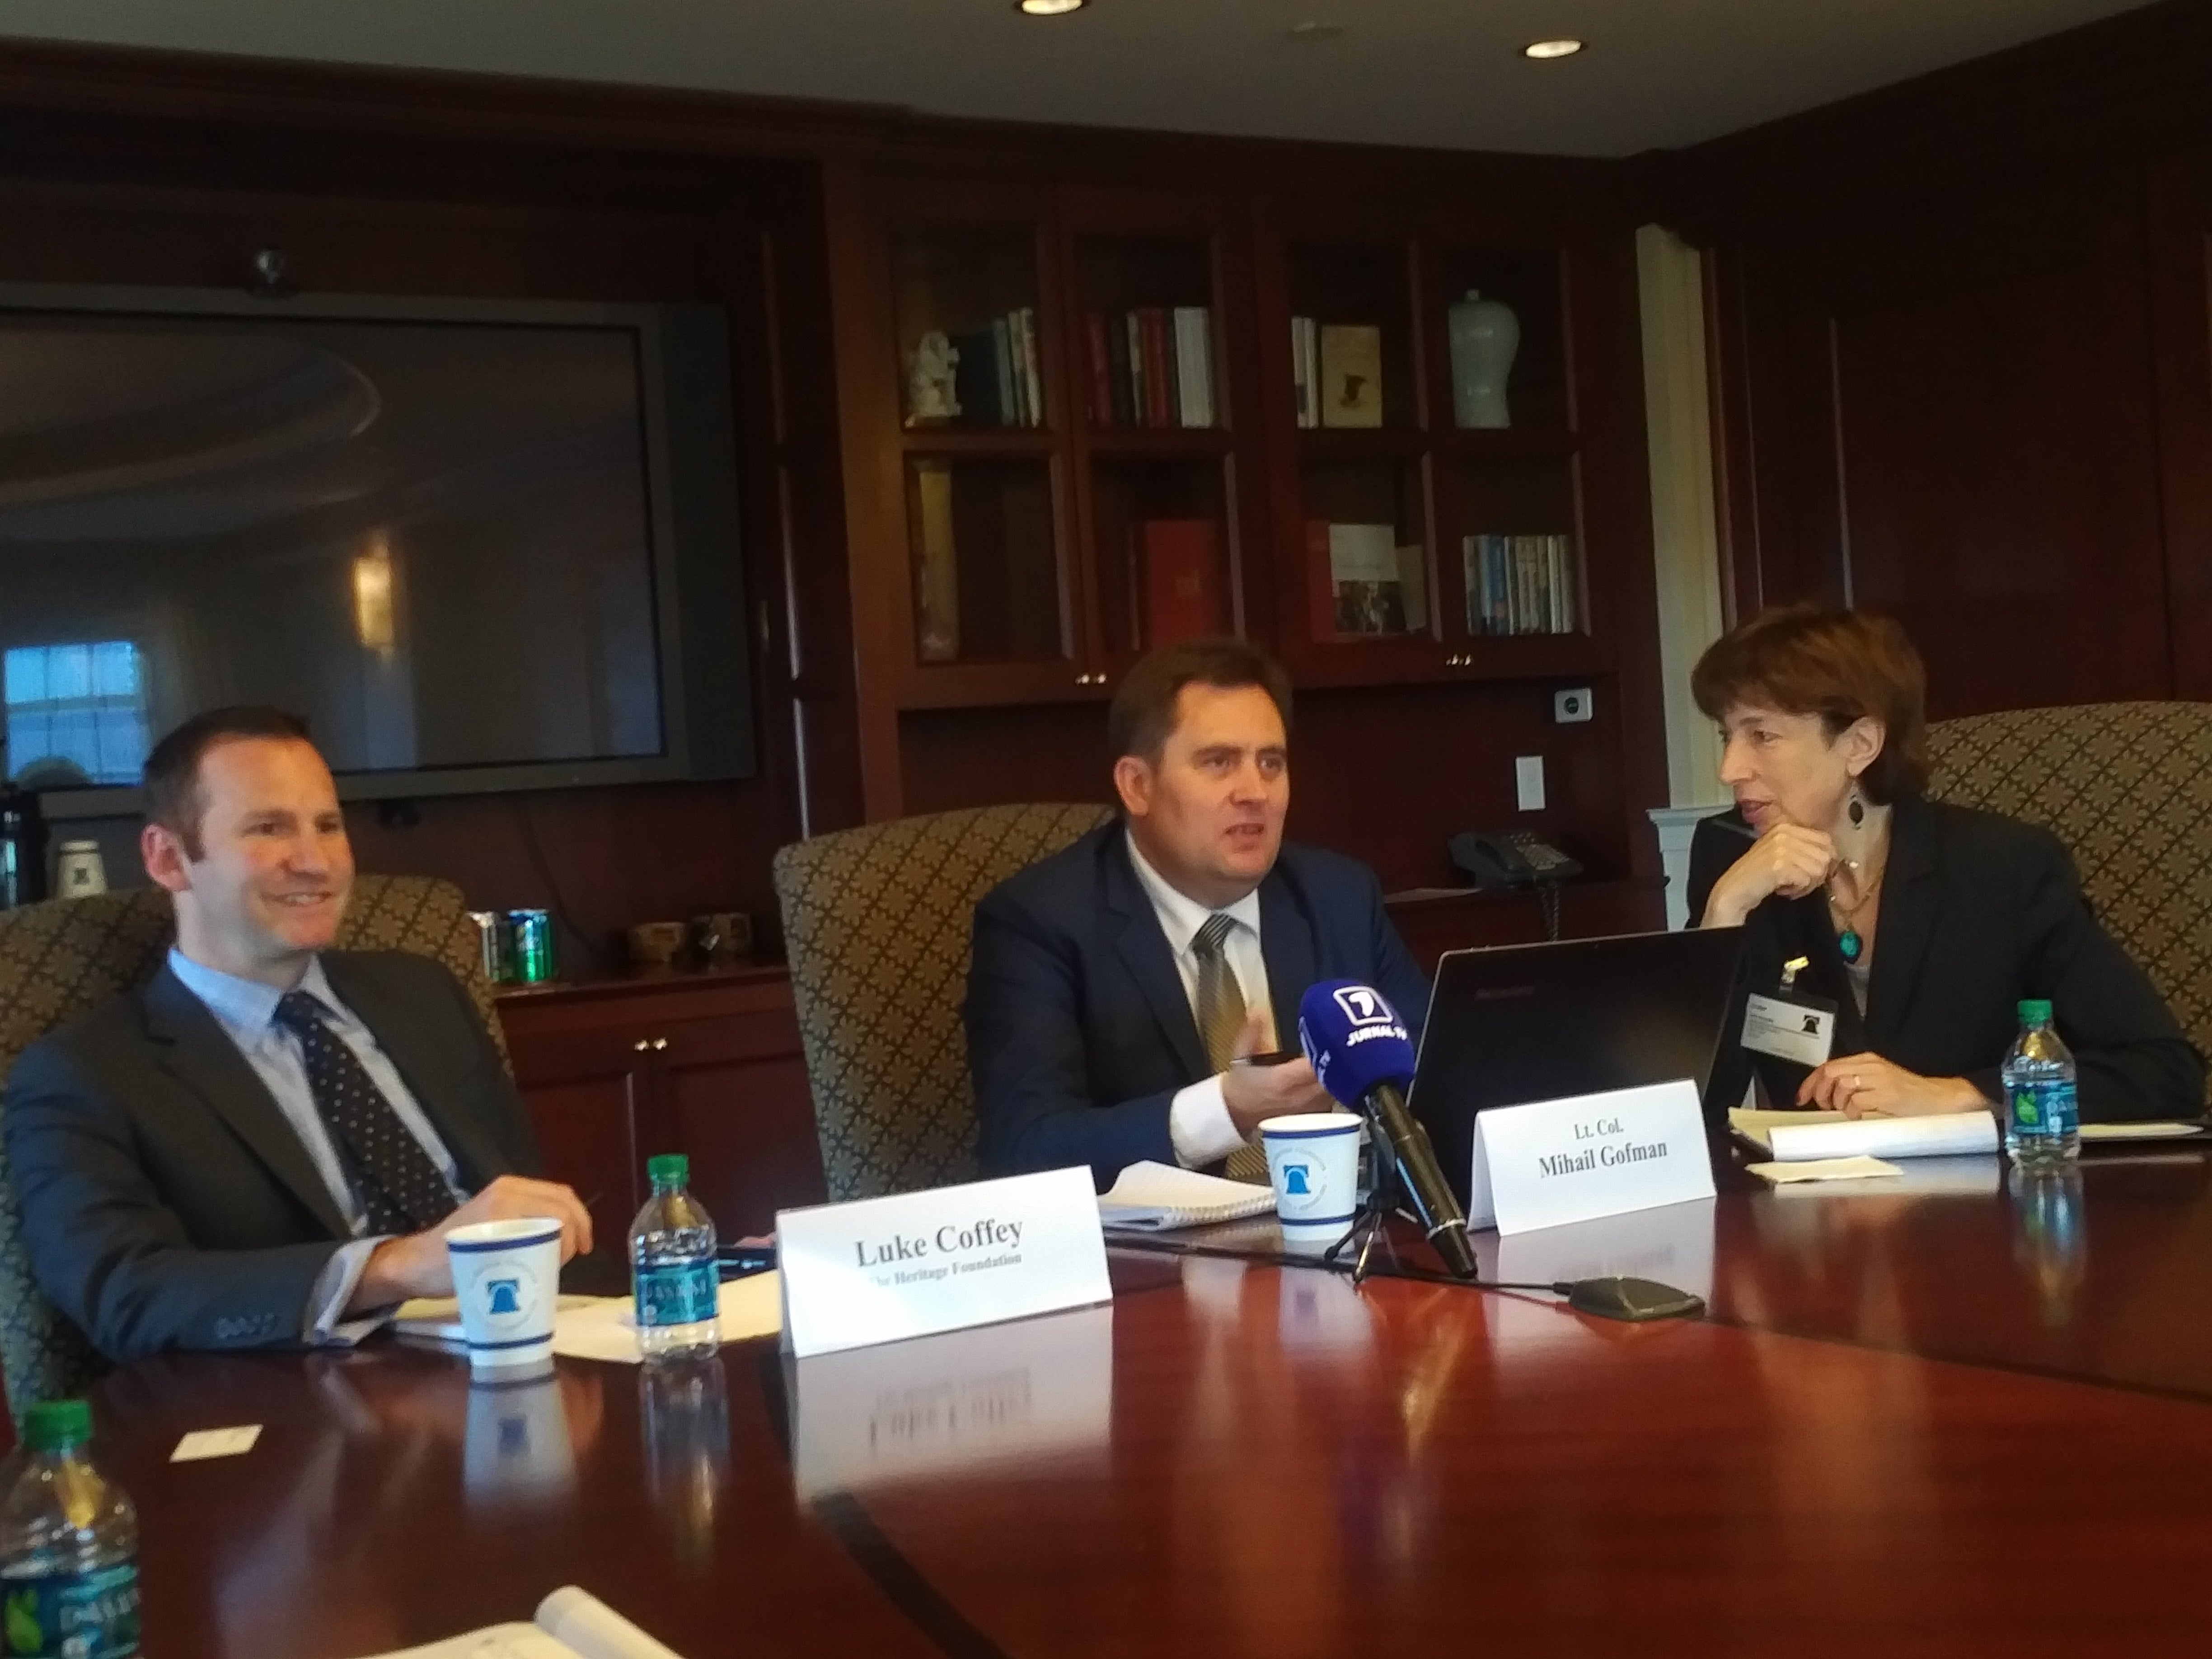 Mihail Gofman, middle, speaks at The Heritage Foundation.